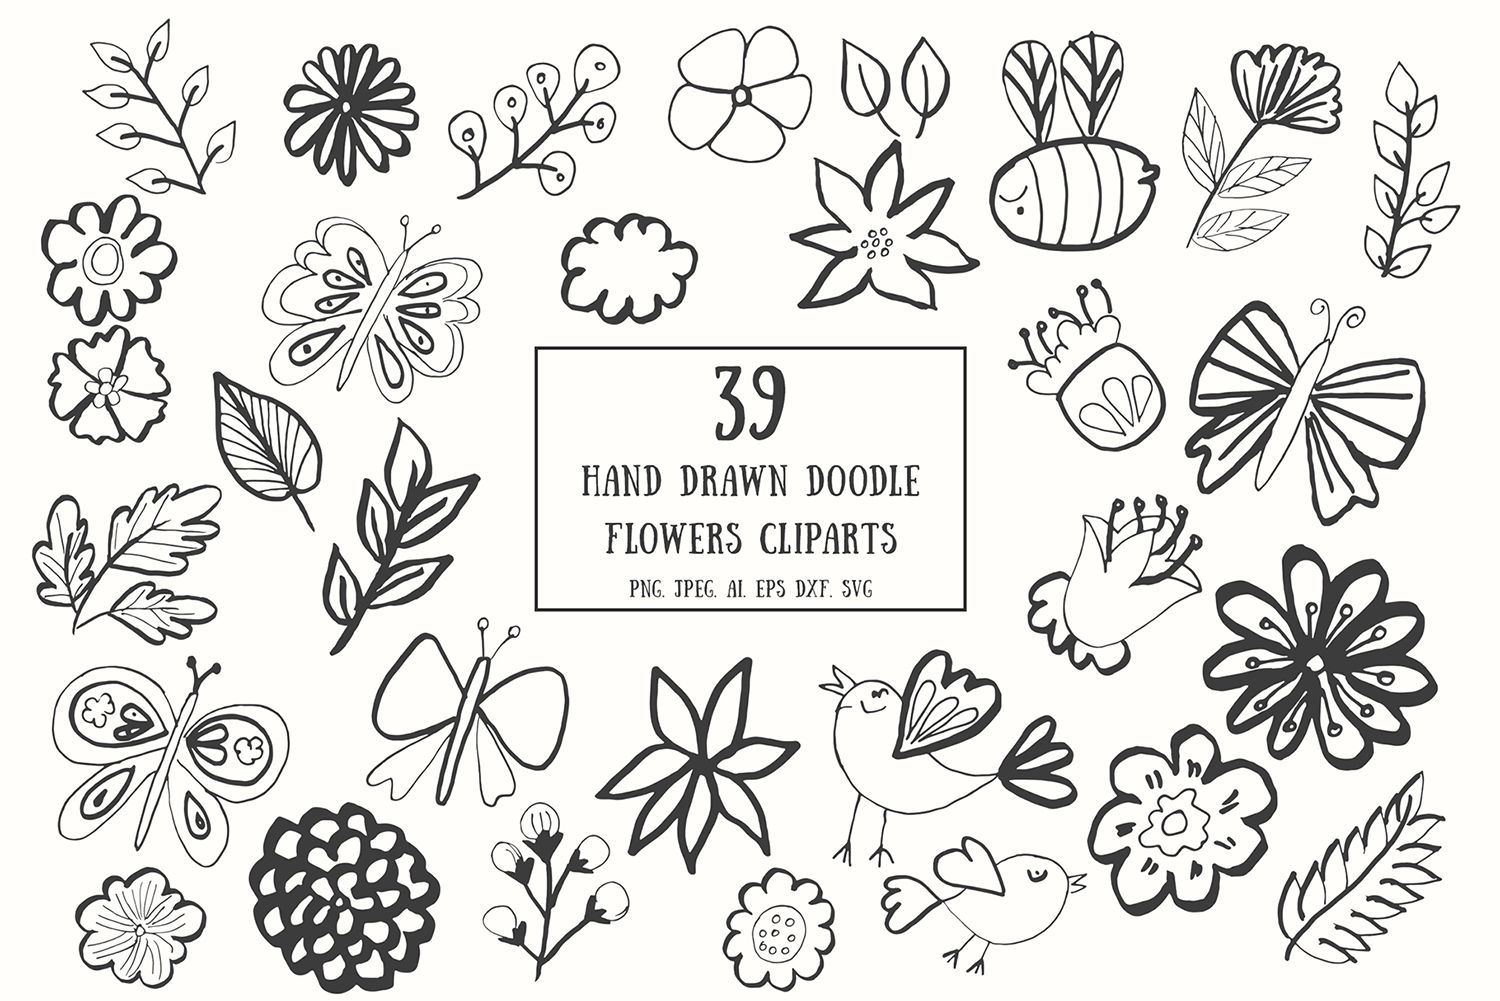 35 Handdrawn Doodle Flowers Cliparts